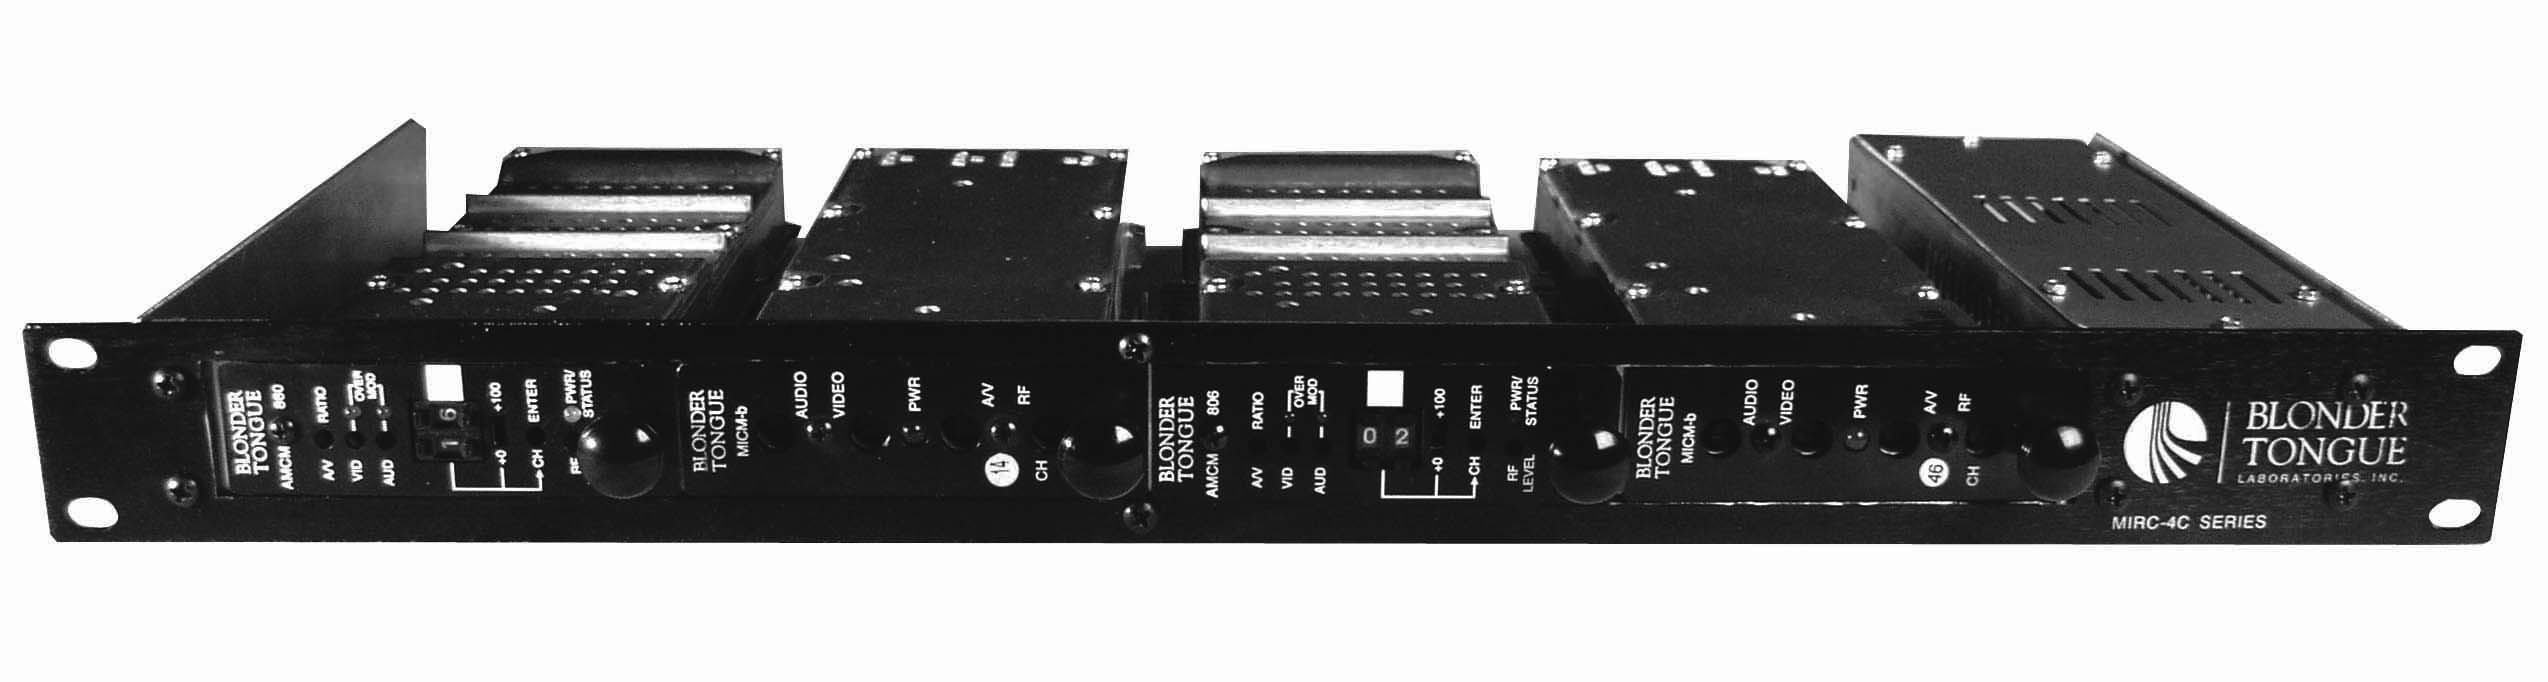 Blonder Tongue HE-4 Series Rack Chassis and Power Supply for 4 Modules